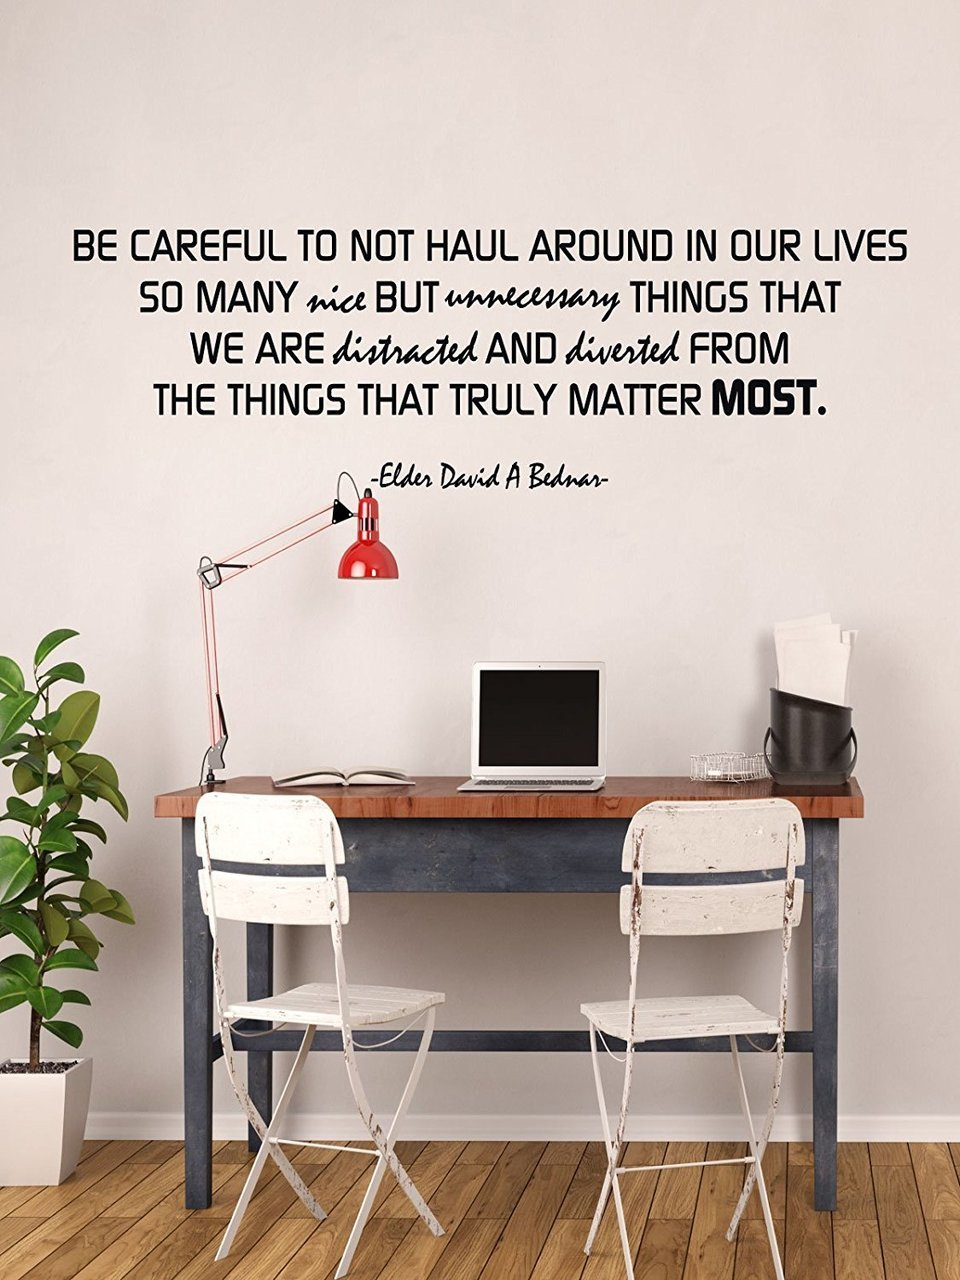 Be Careful To Focus On What Really Matters - David A Bednar